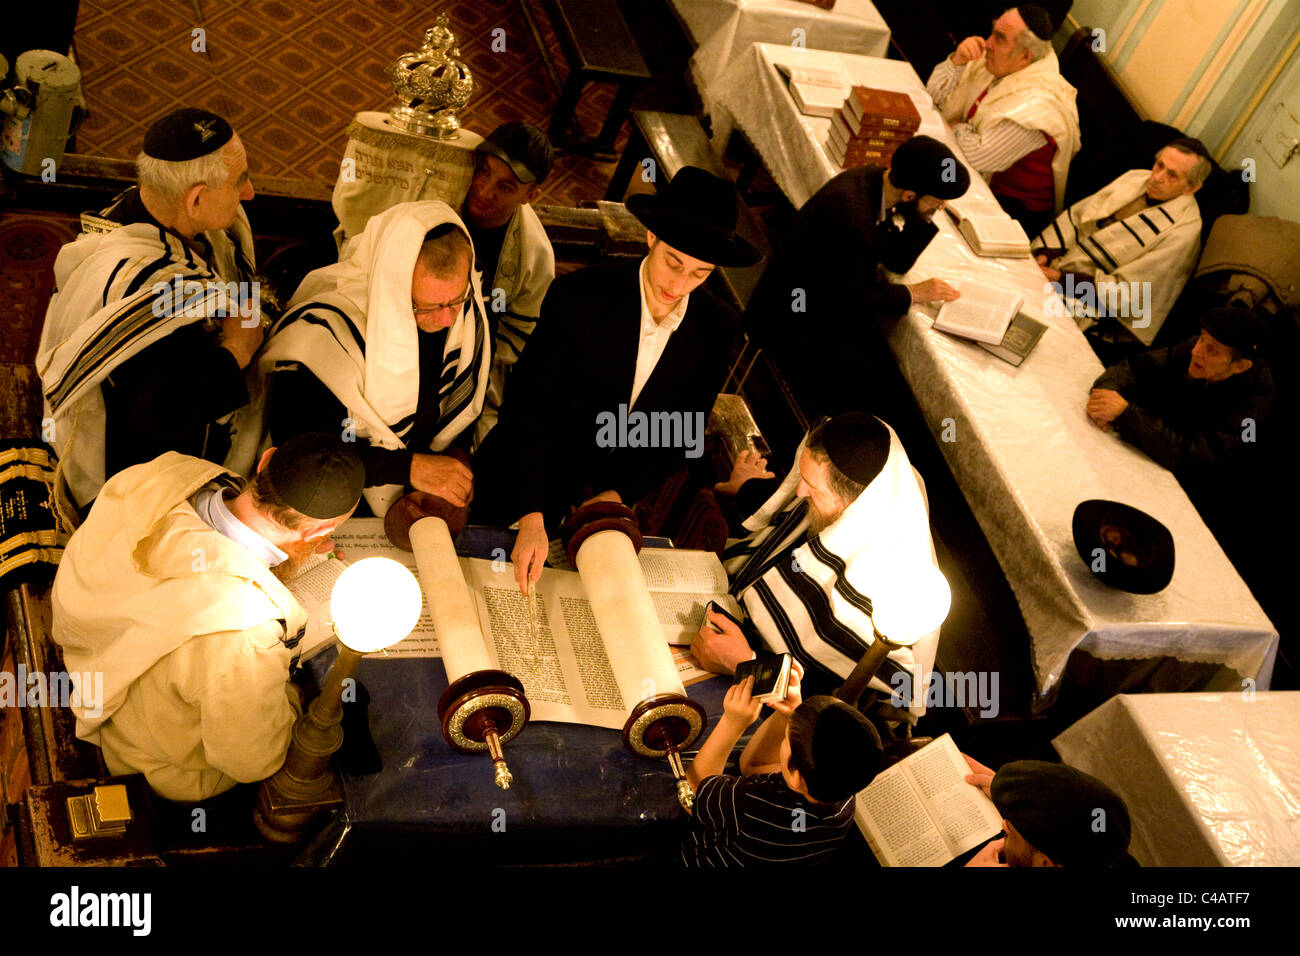 Russia, St.Petersburg; During a religious ceremony in the main old Synagogue in the historical centre Stock Photo